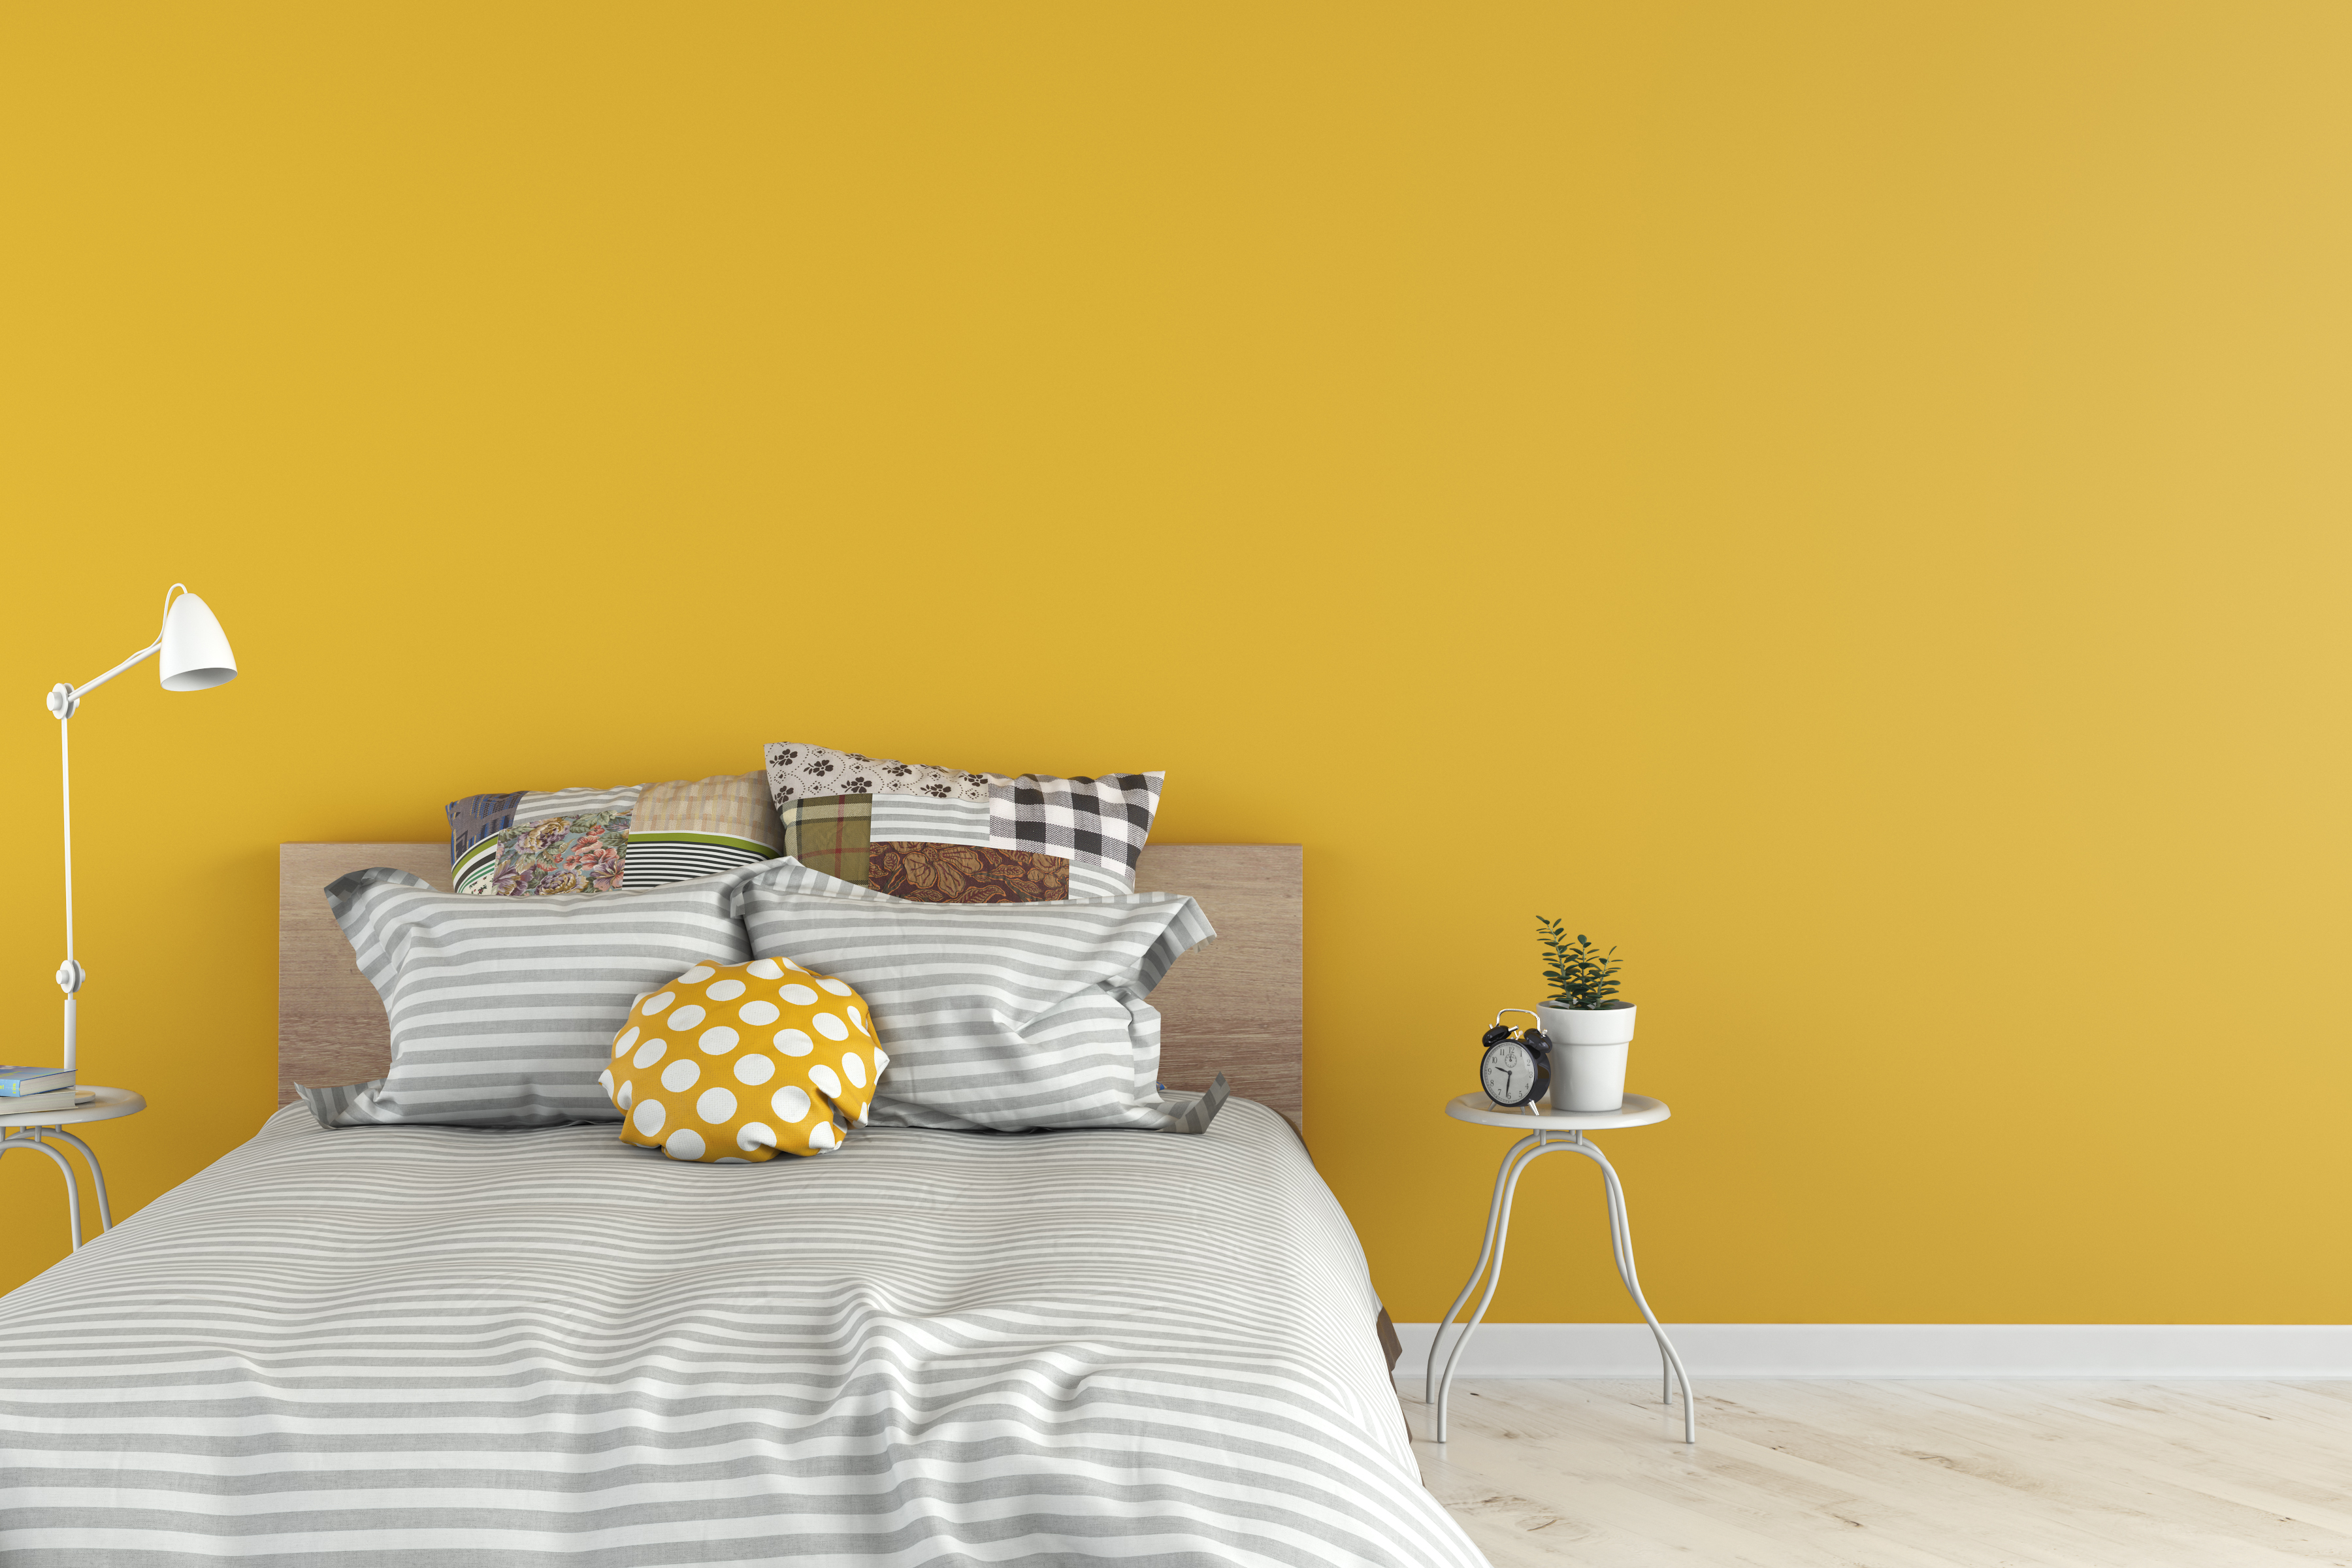 What Ds Go with Yellow-Gold Walls? | Home Guides | SF Gate Er Yellow Bedroom Decorating Ideas on black and yellow bedroom ideas, yellow country bedrooms, yellow and grey bedroom ideas, beach house master bedroom ideas, yellow bedroom art, yellow bedroom window treatments, yellow bathroom remodeling ideas, yellow bedroom inspiration, floral bedroom ideas, yellow bedroom decorations, traditional small bedroom ideas, yellow bedroom rugs, yellow master bedroom ideas, teenage girl bedroom ideas, light yellow bedroom ideas, yellow themed bedroom, yellow painted bedroom decorating, yellow girls' bedroom, yellow bedroom accessories, blue bedroom ideas,